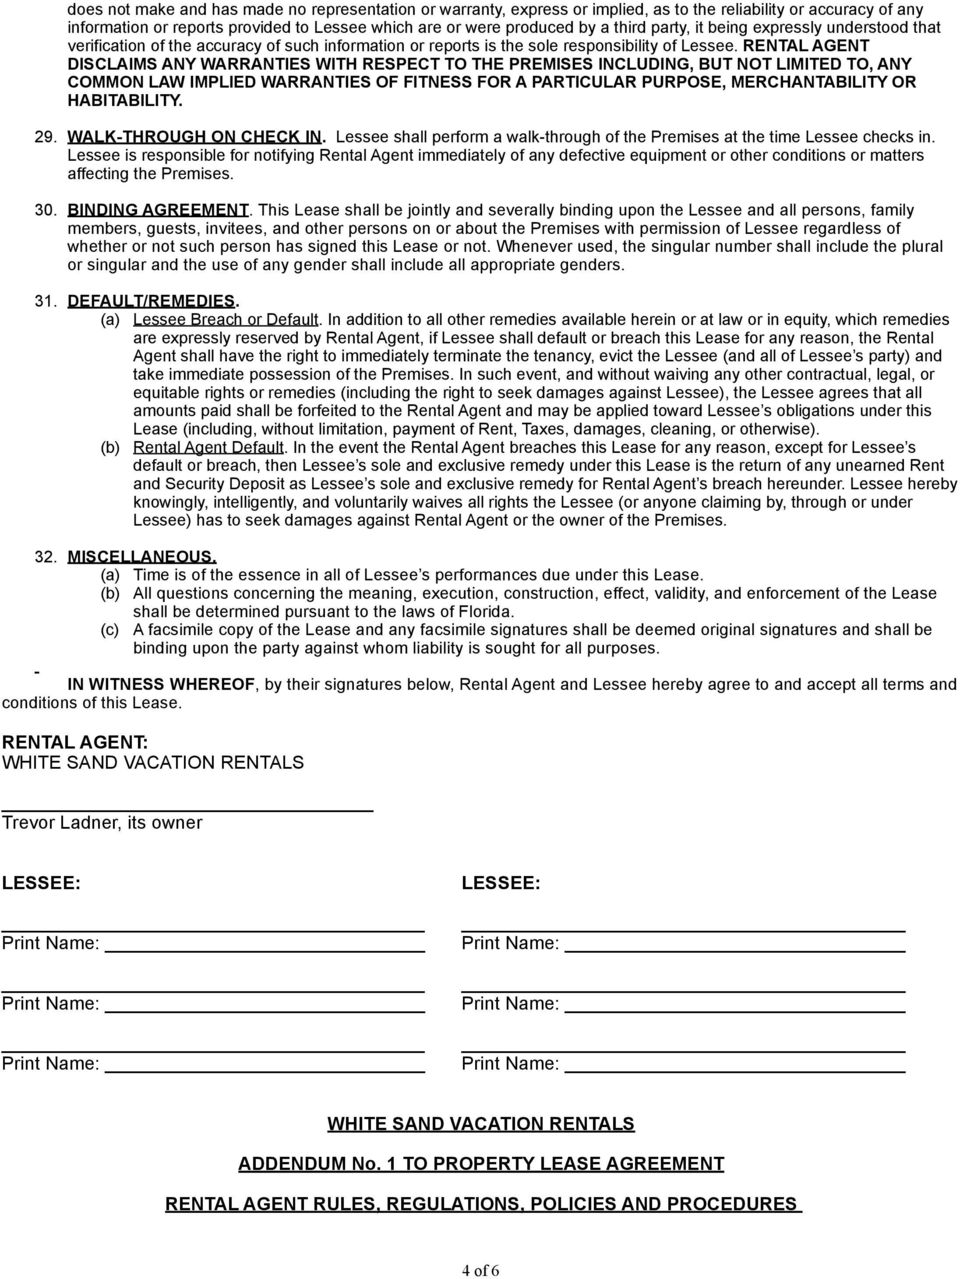 White Sand Vacation Rentals Vacation Property Lease Agreement Pdf